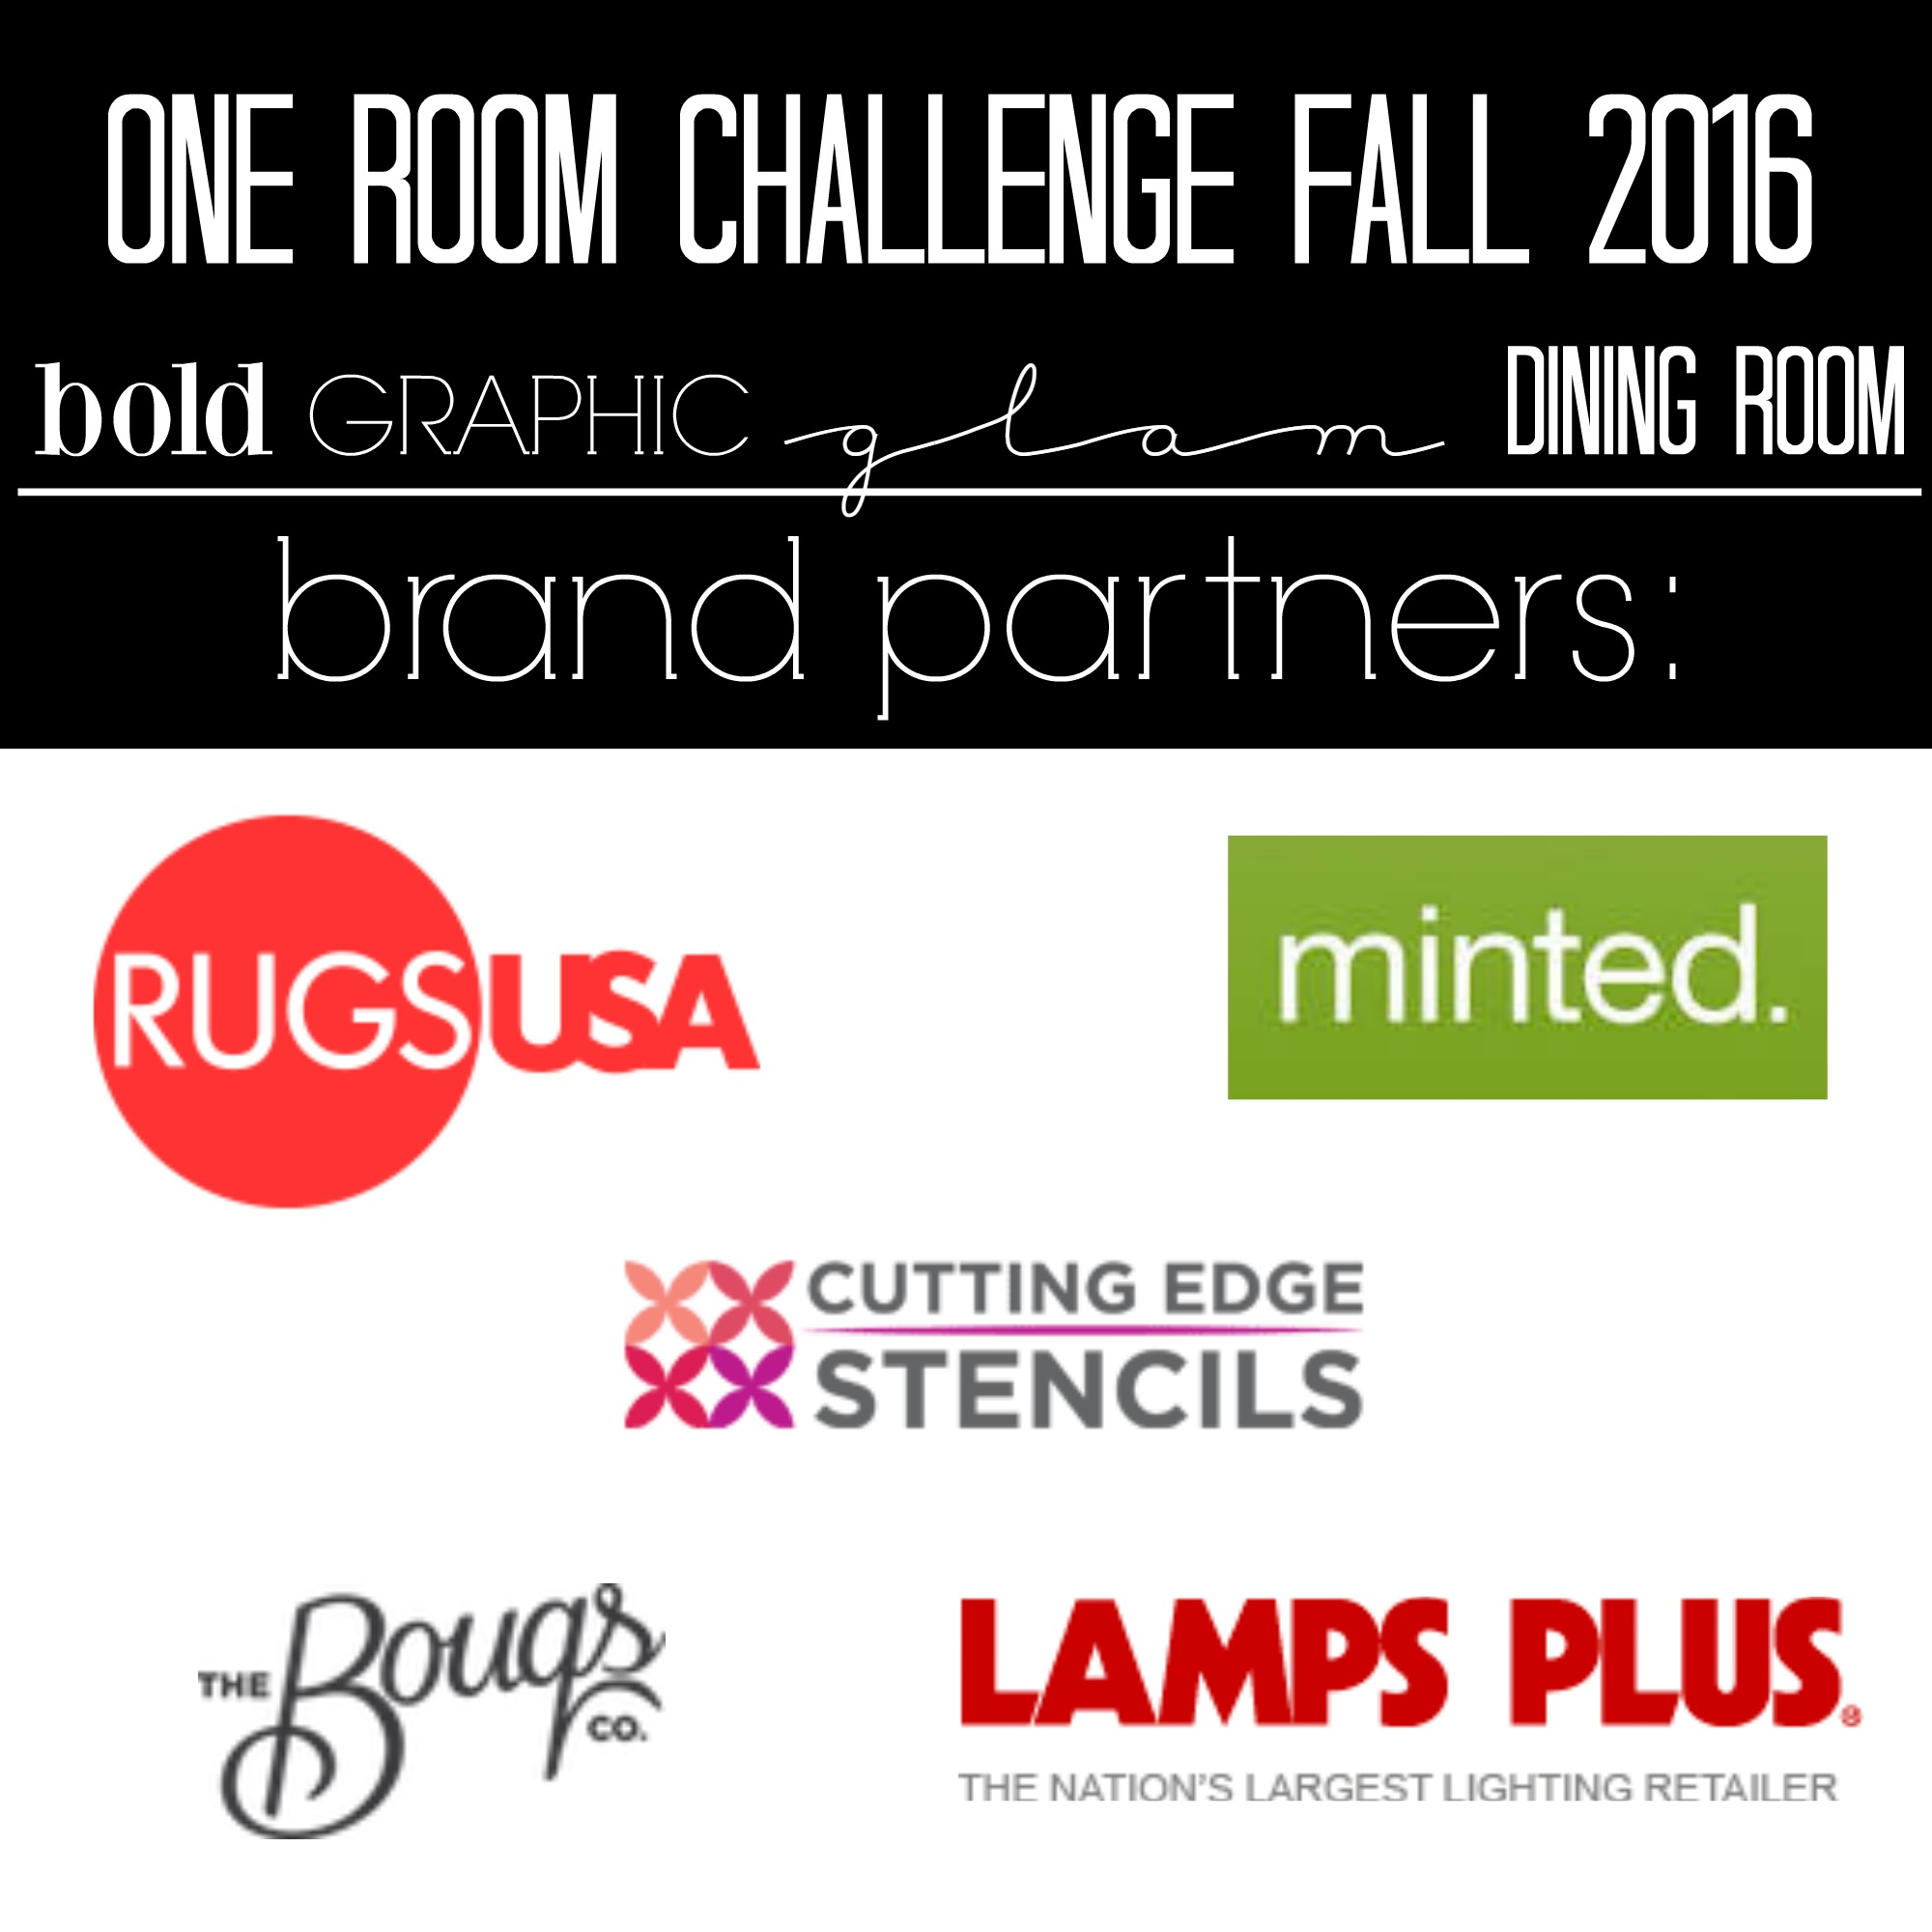 One Room Challenge Bold Graphic Glam Dining Room This